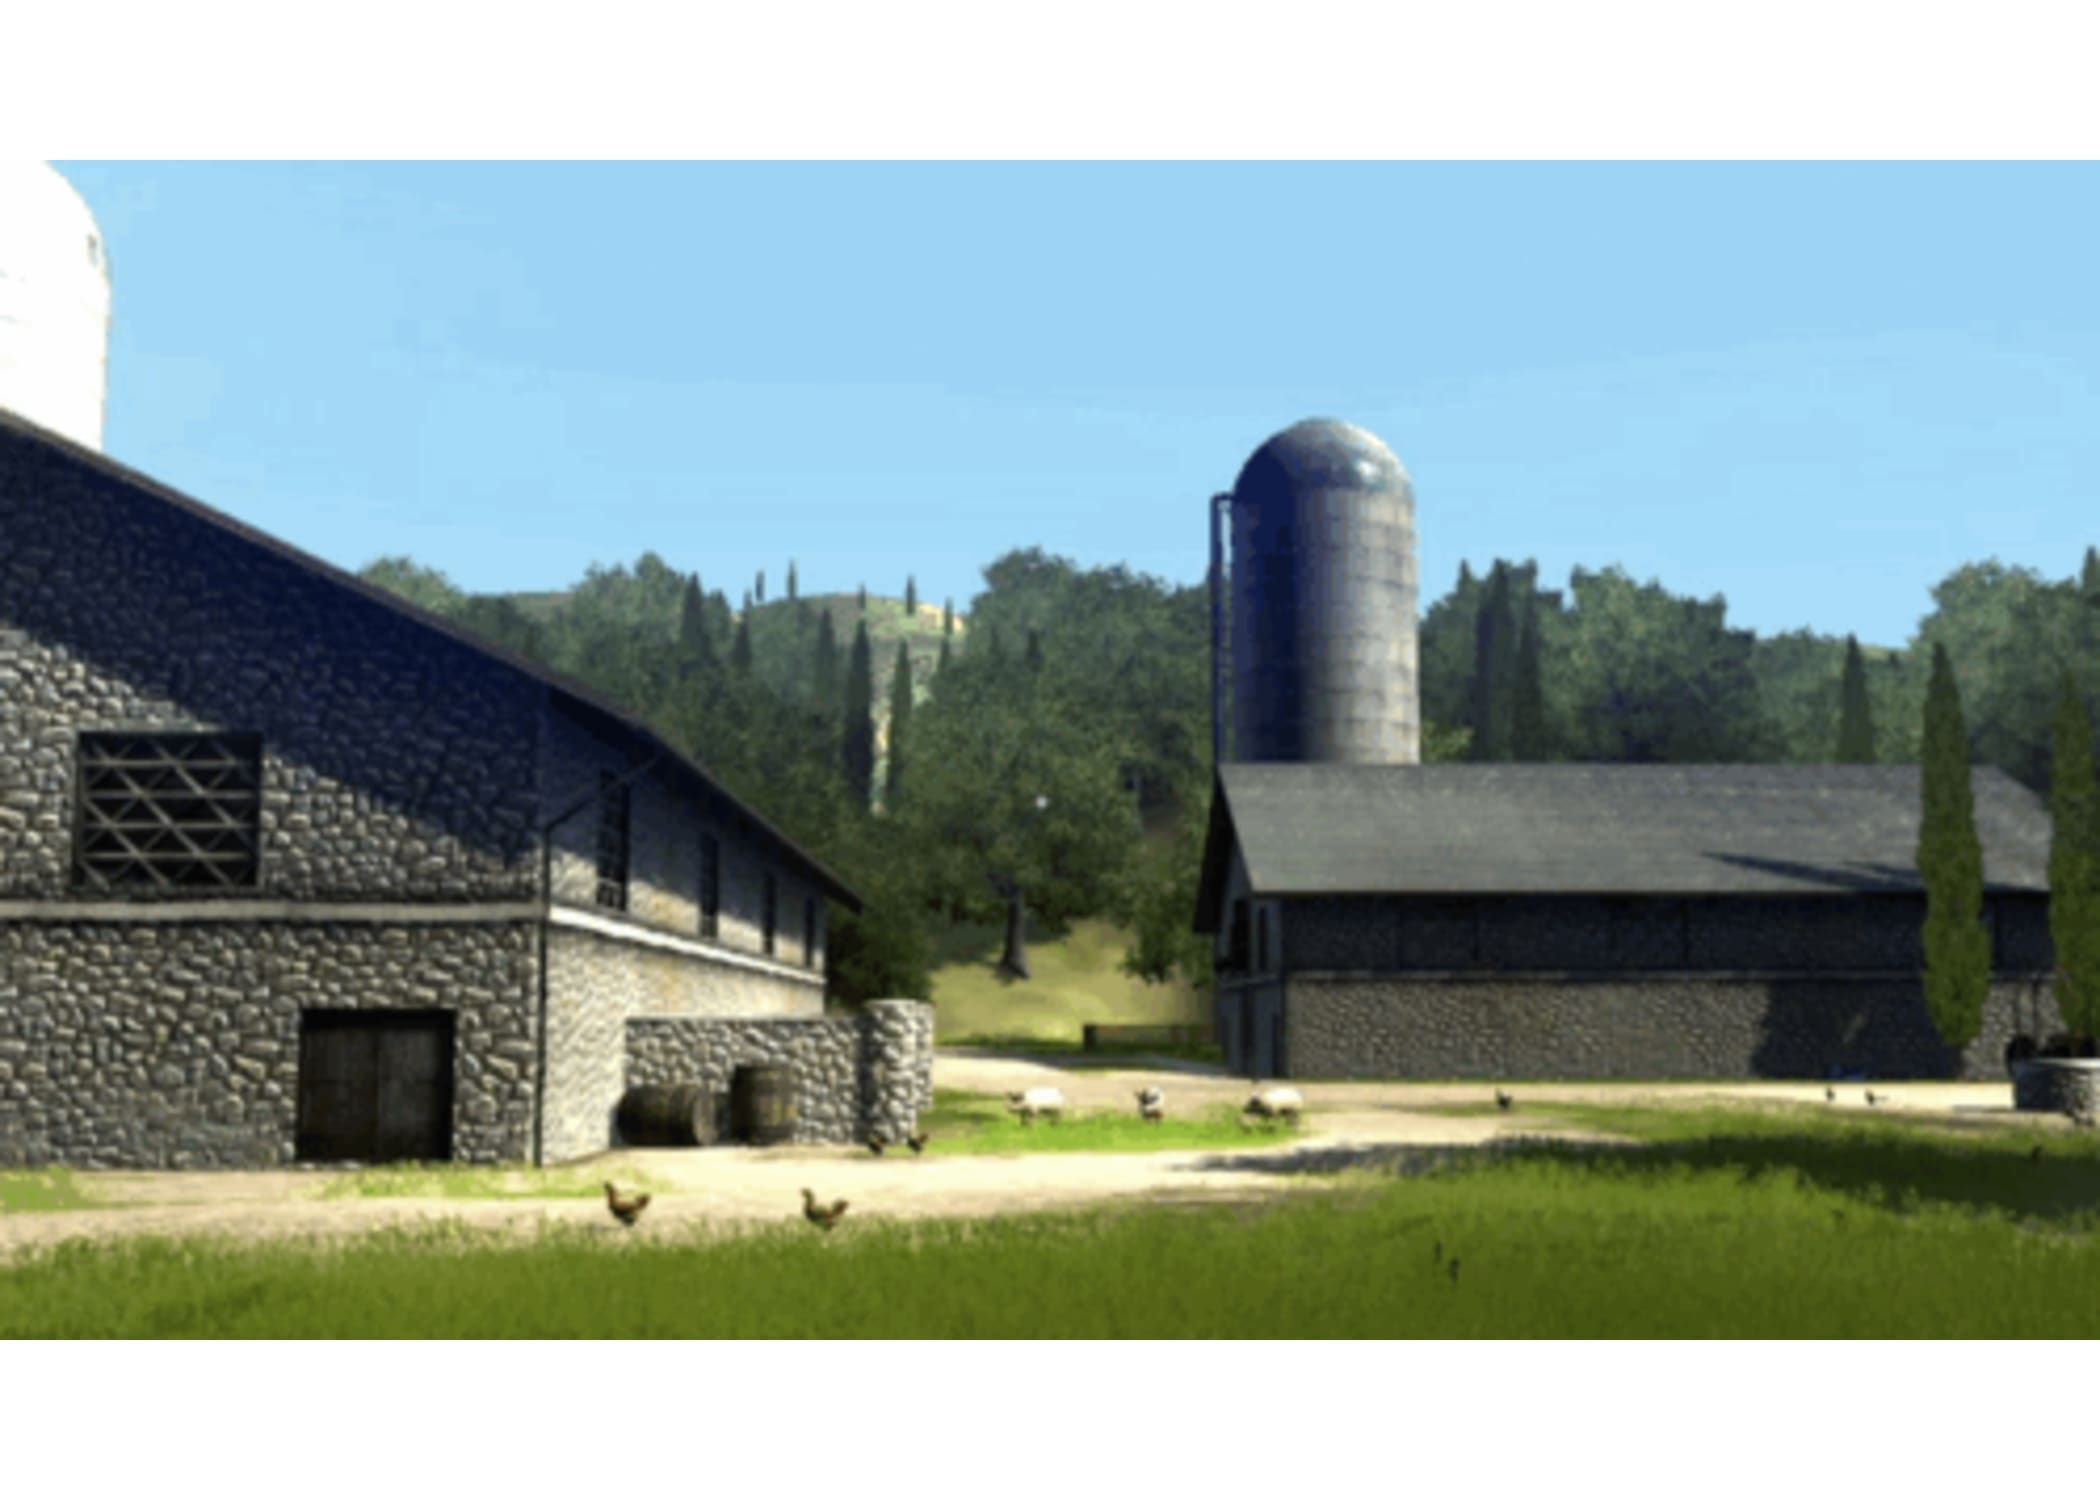 Buy Mega Farming Collection on PC  GAME #Affiliate , #affiliate, #Farming, #Mega, #Buy, #GAME, #PC